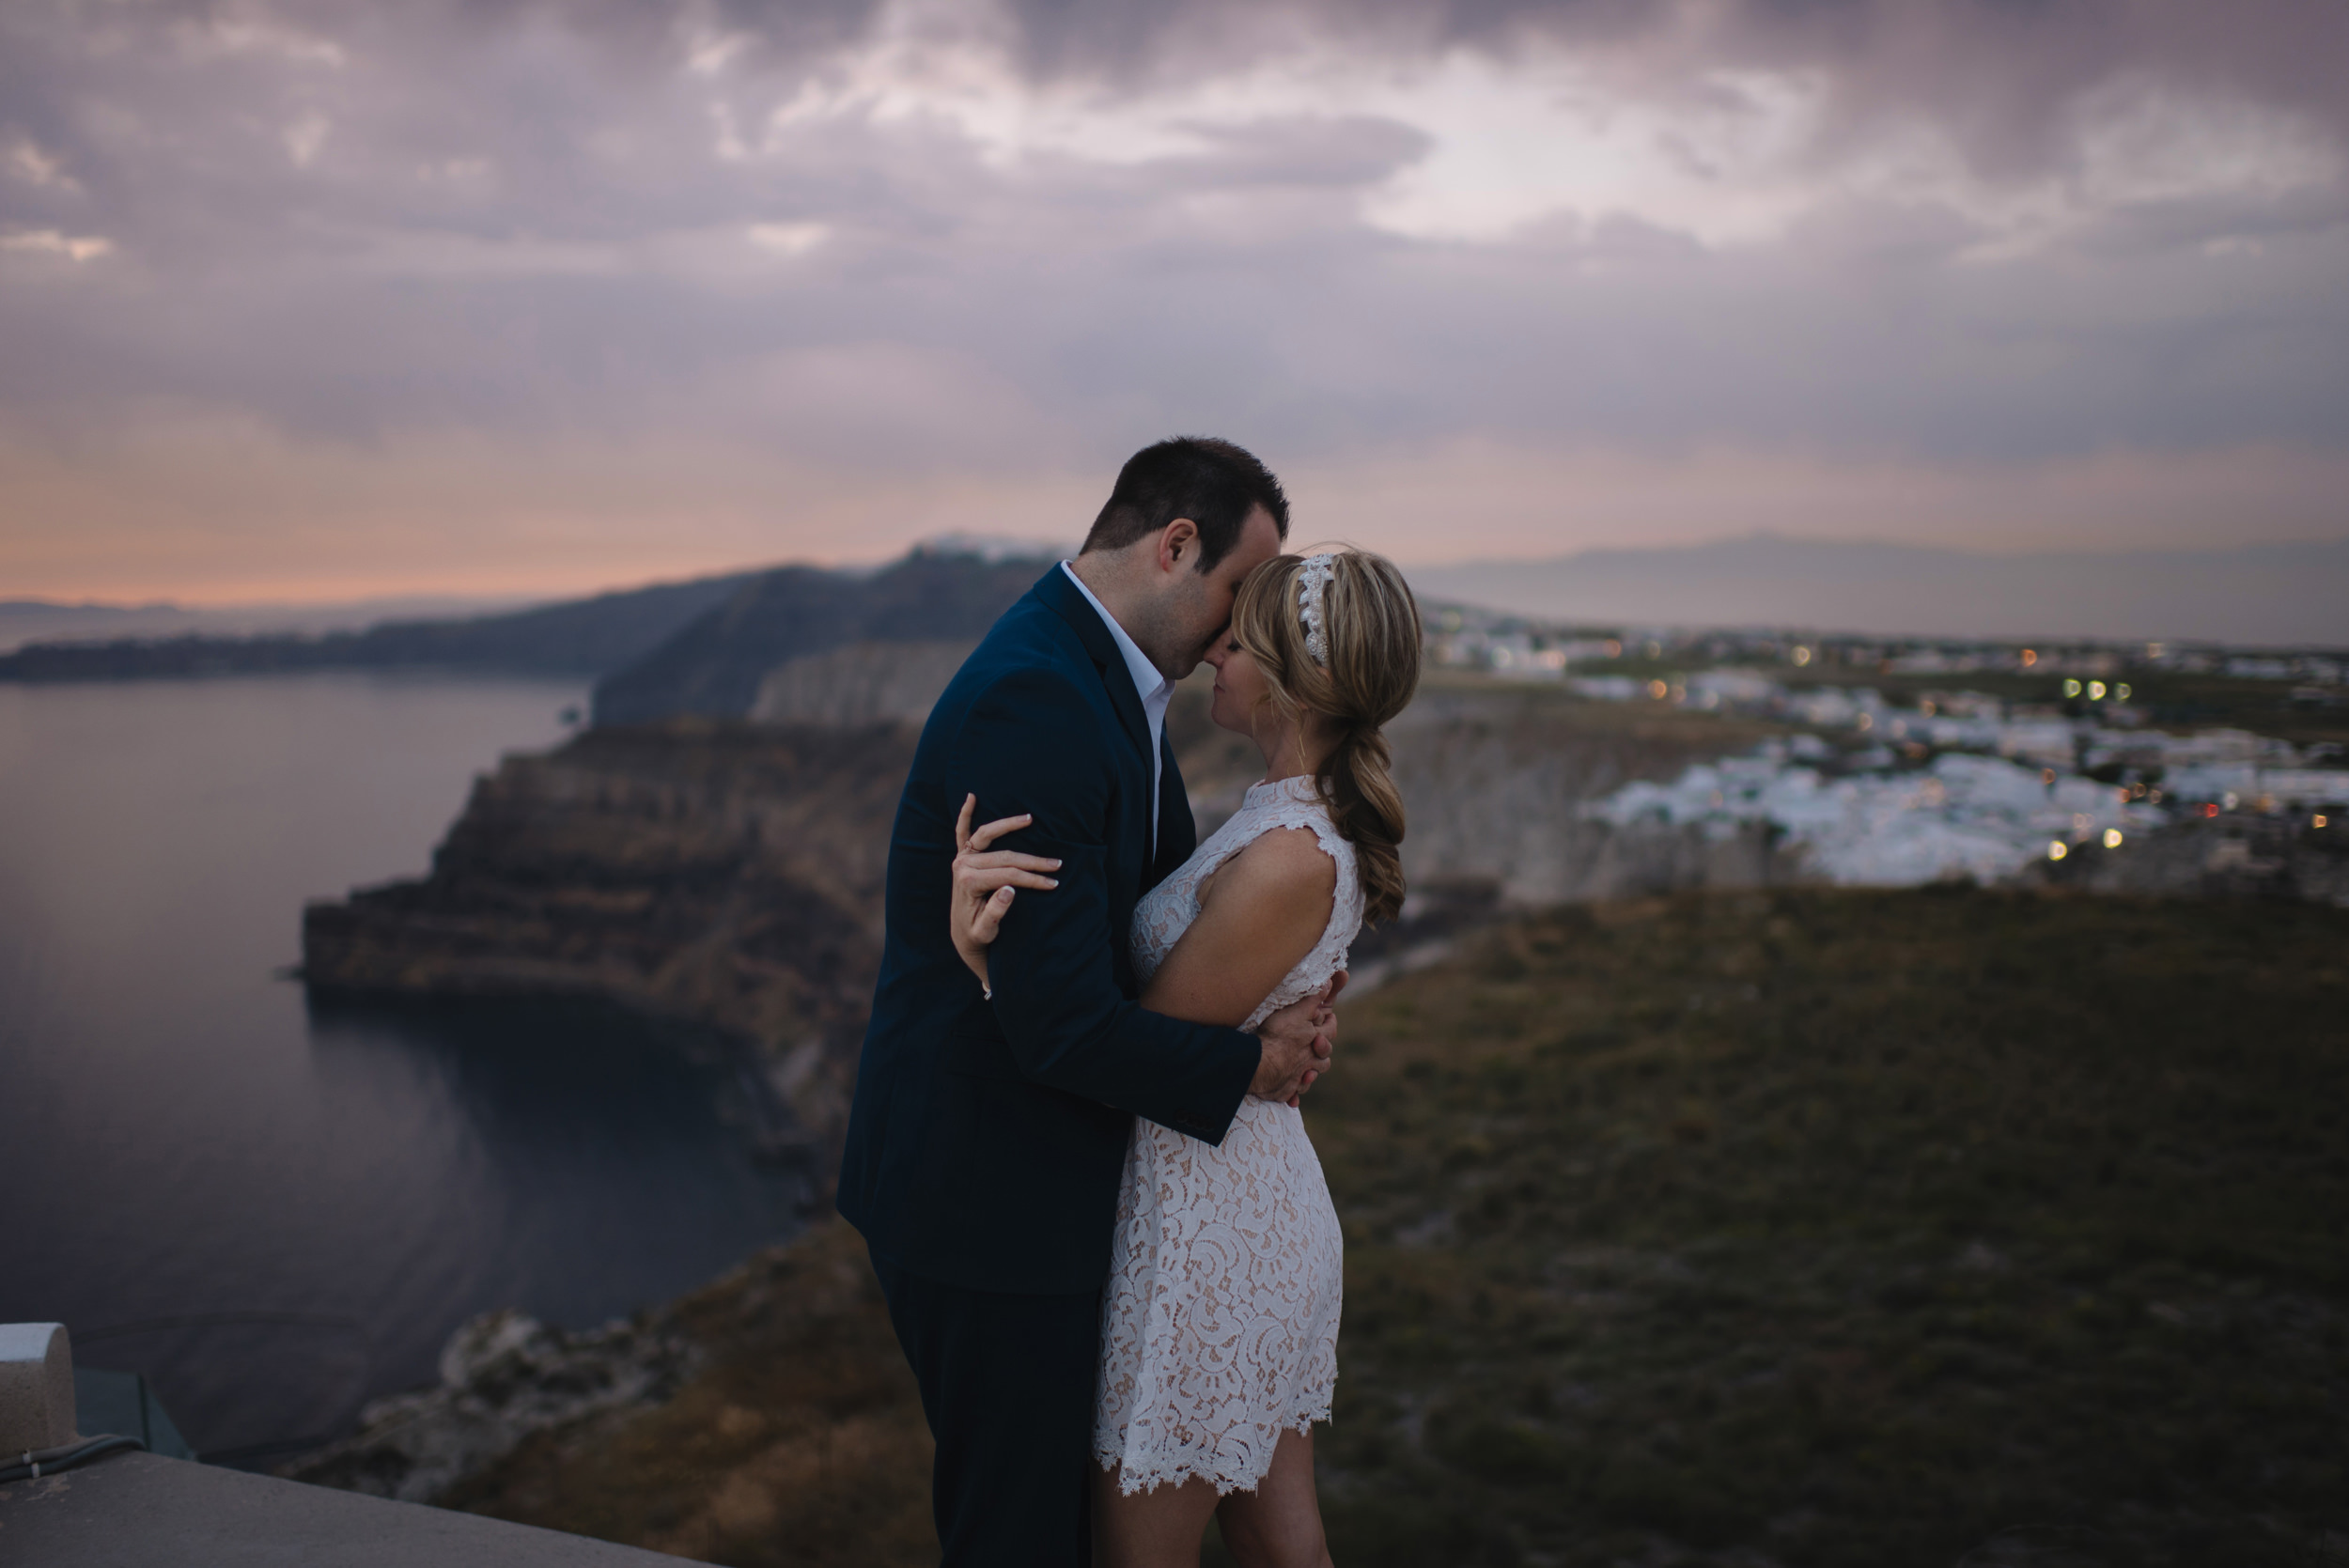 The sunsets over Santorini as a couple kisses during their Destination Elopement with Greece Wedding Photographers Colby and Jess